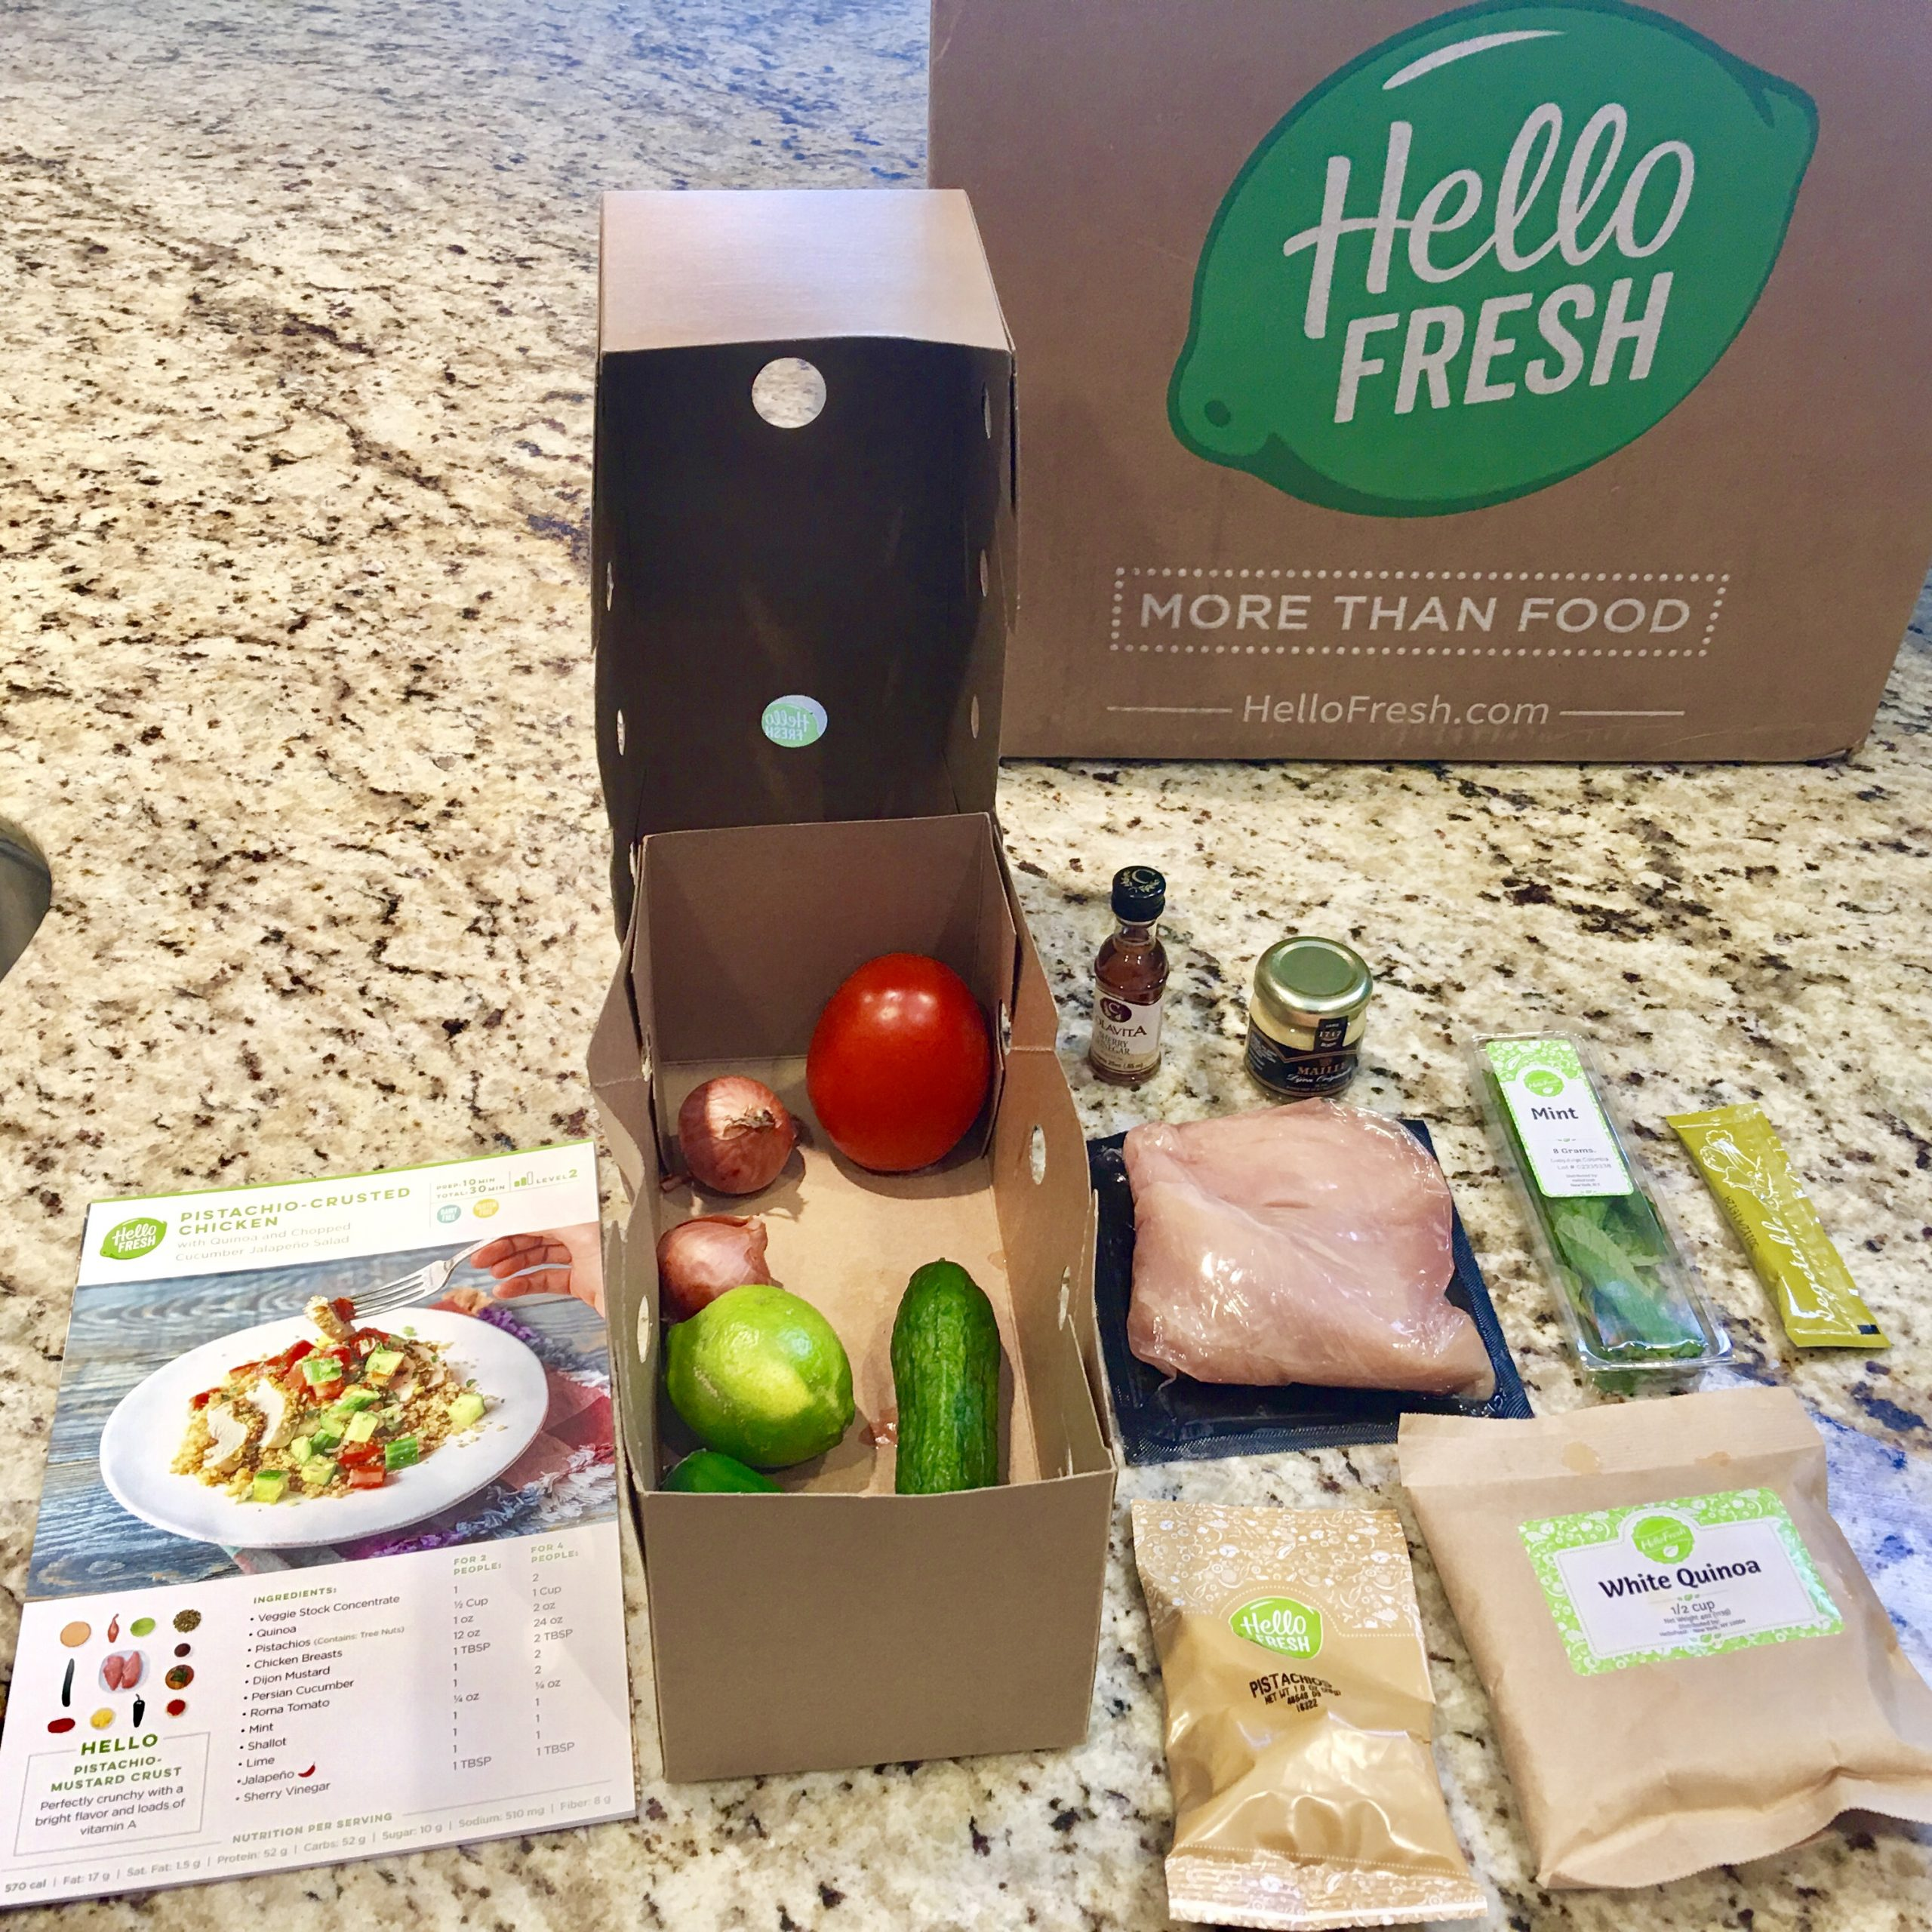 Hellofresh/Yummy